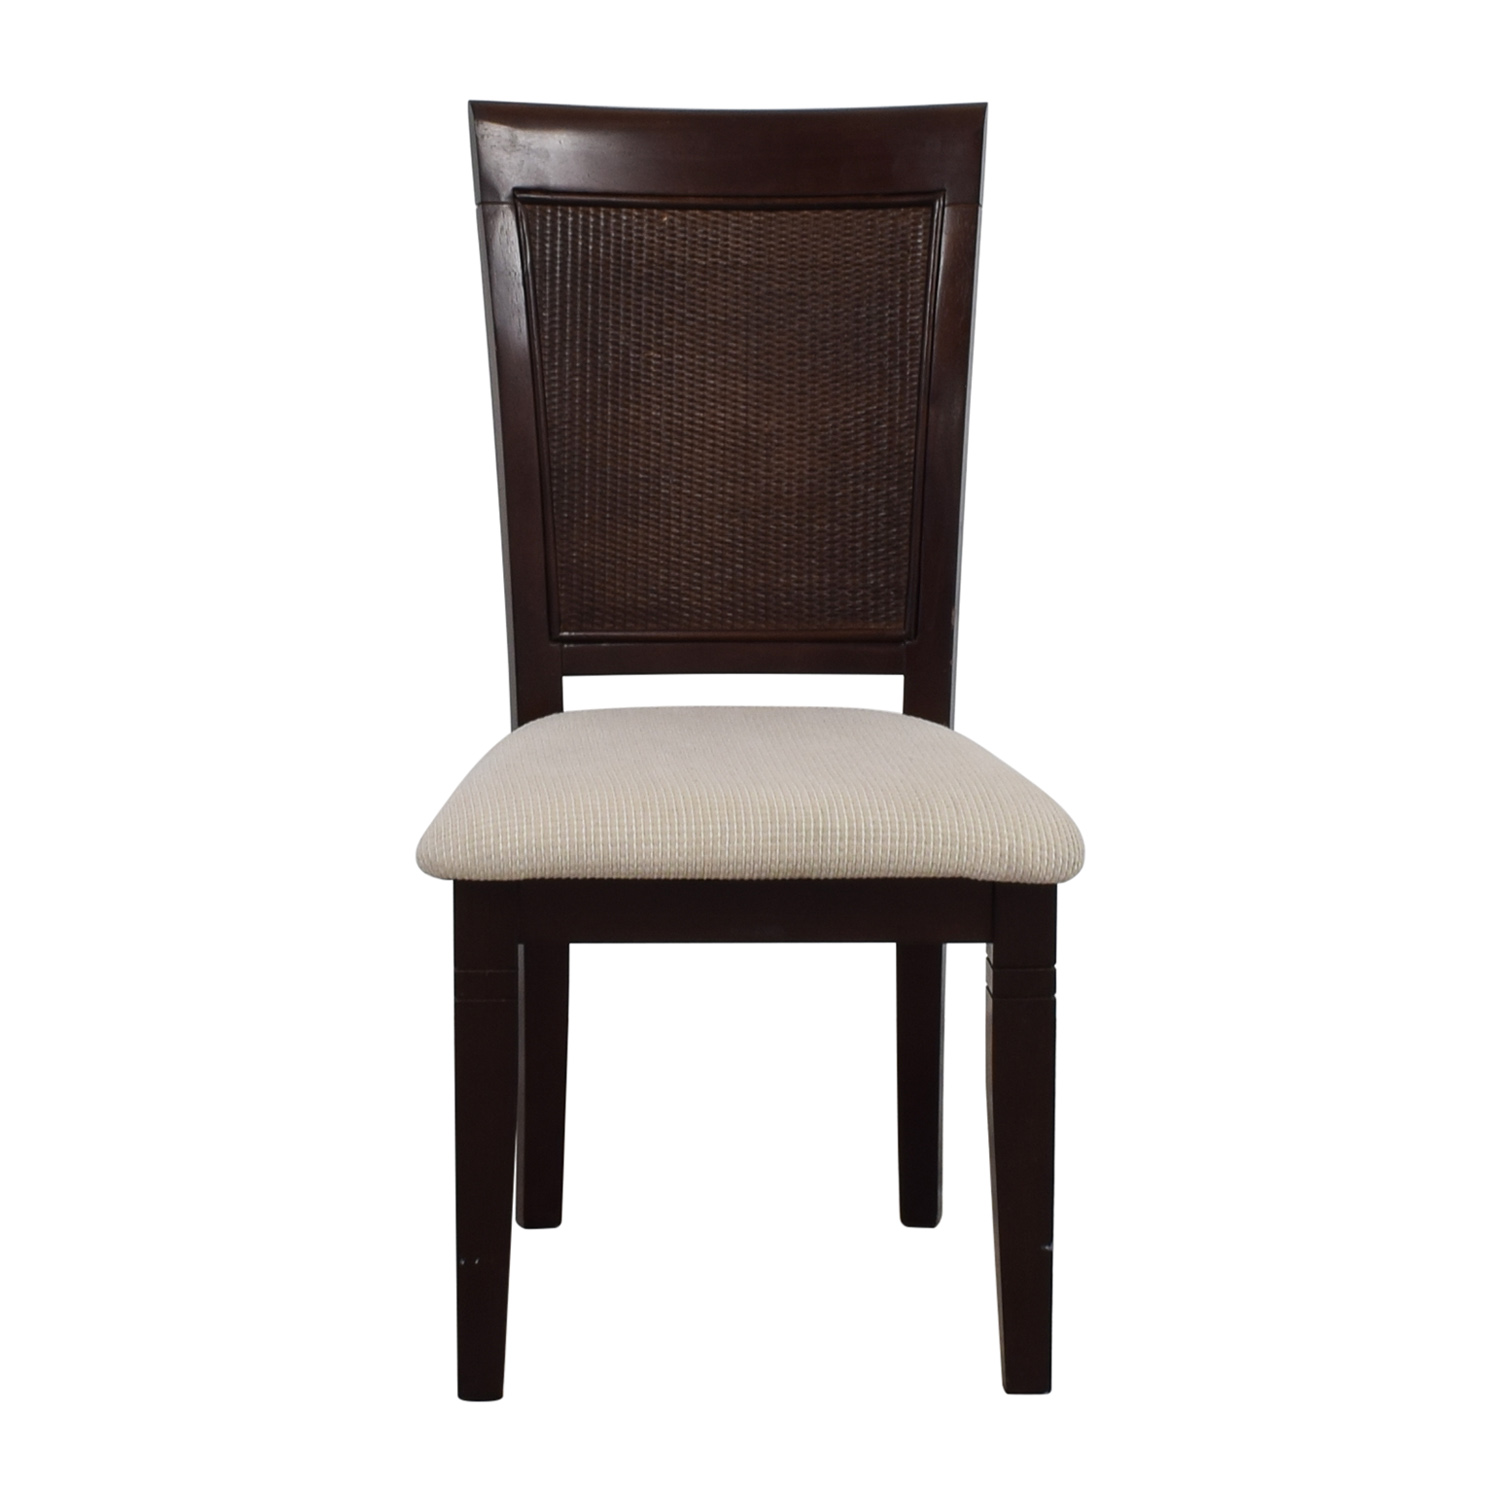 Beige Wood Chair with Padded Seat